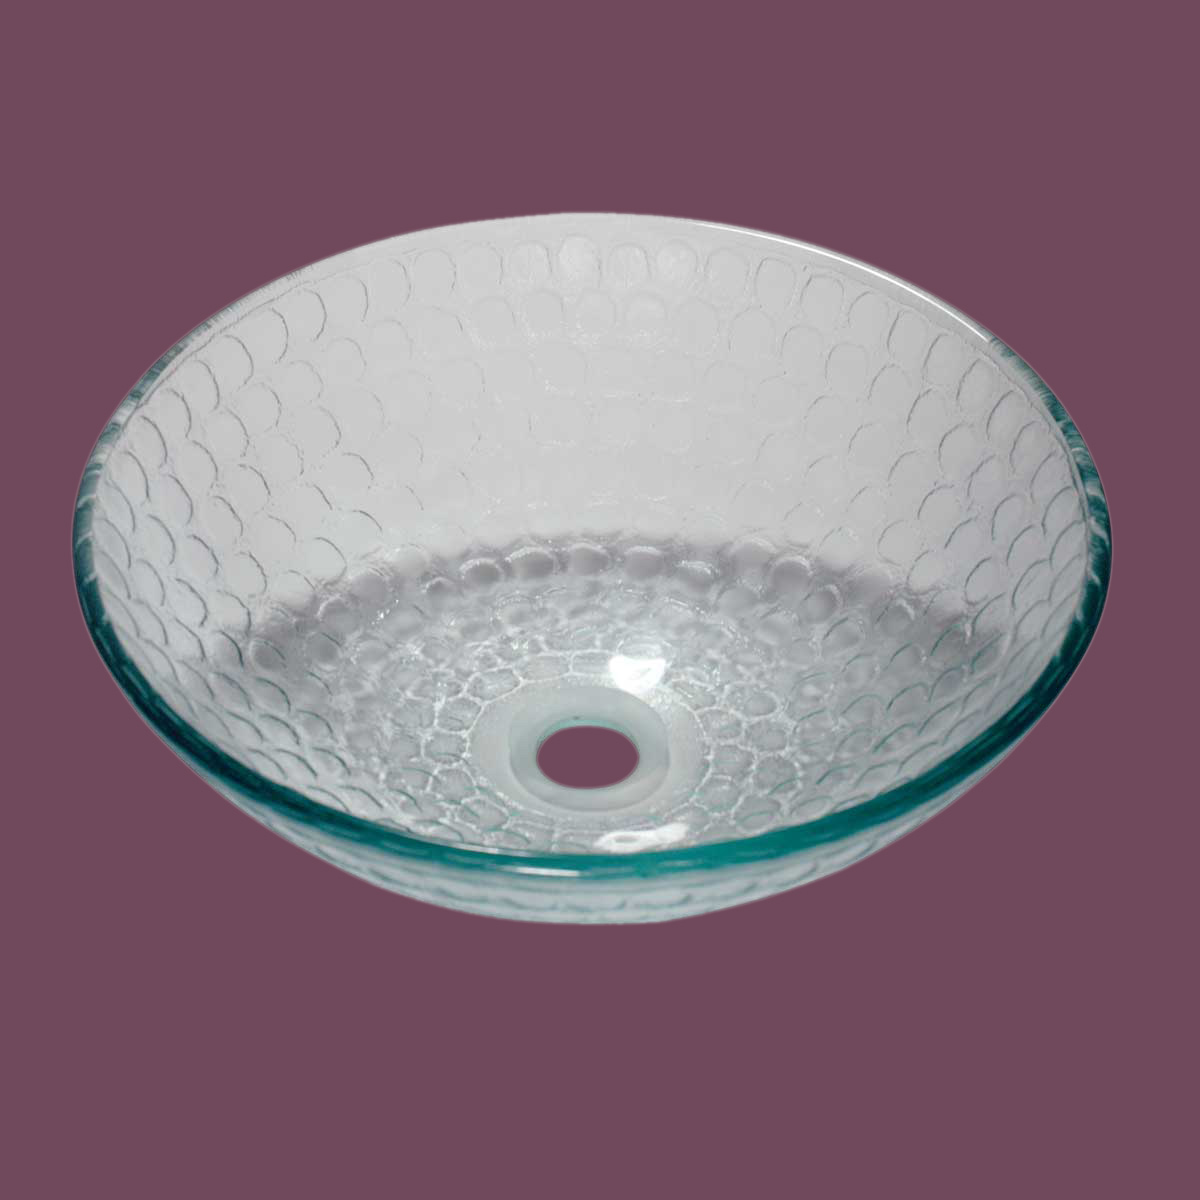 Tempered Glass Vessel Sink Frosted Green Bowl Sink